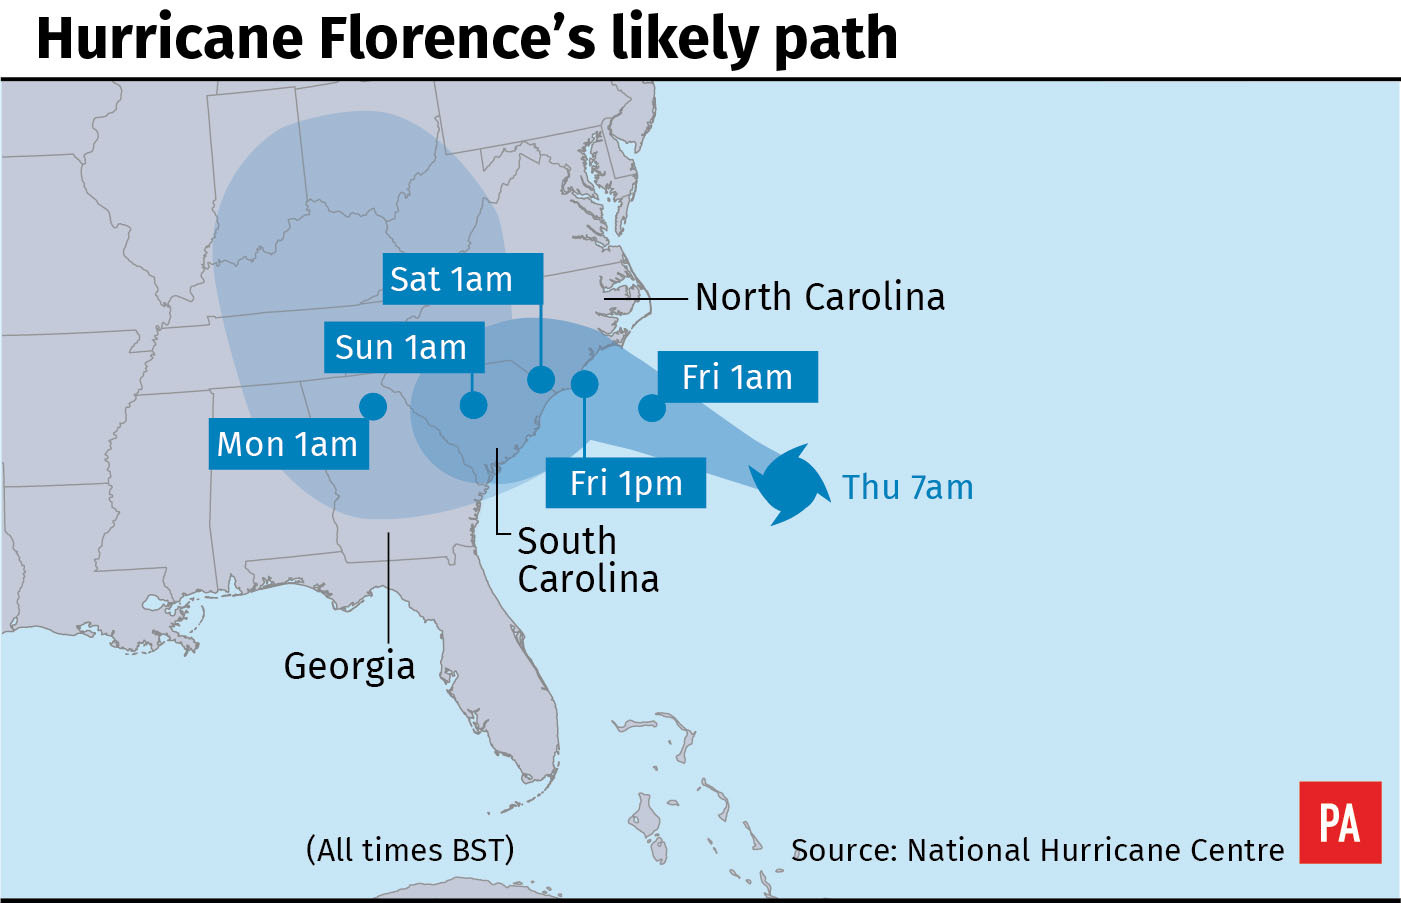 Insurers Brace for $20B in Catastrophic Losses From Hurricane Florence